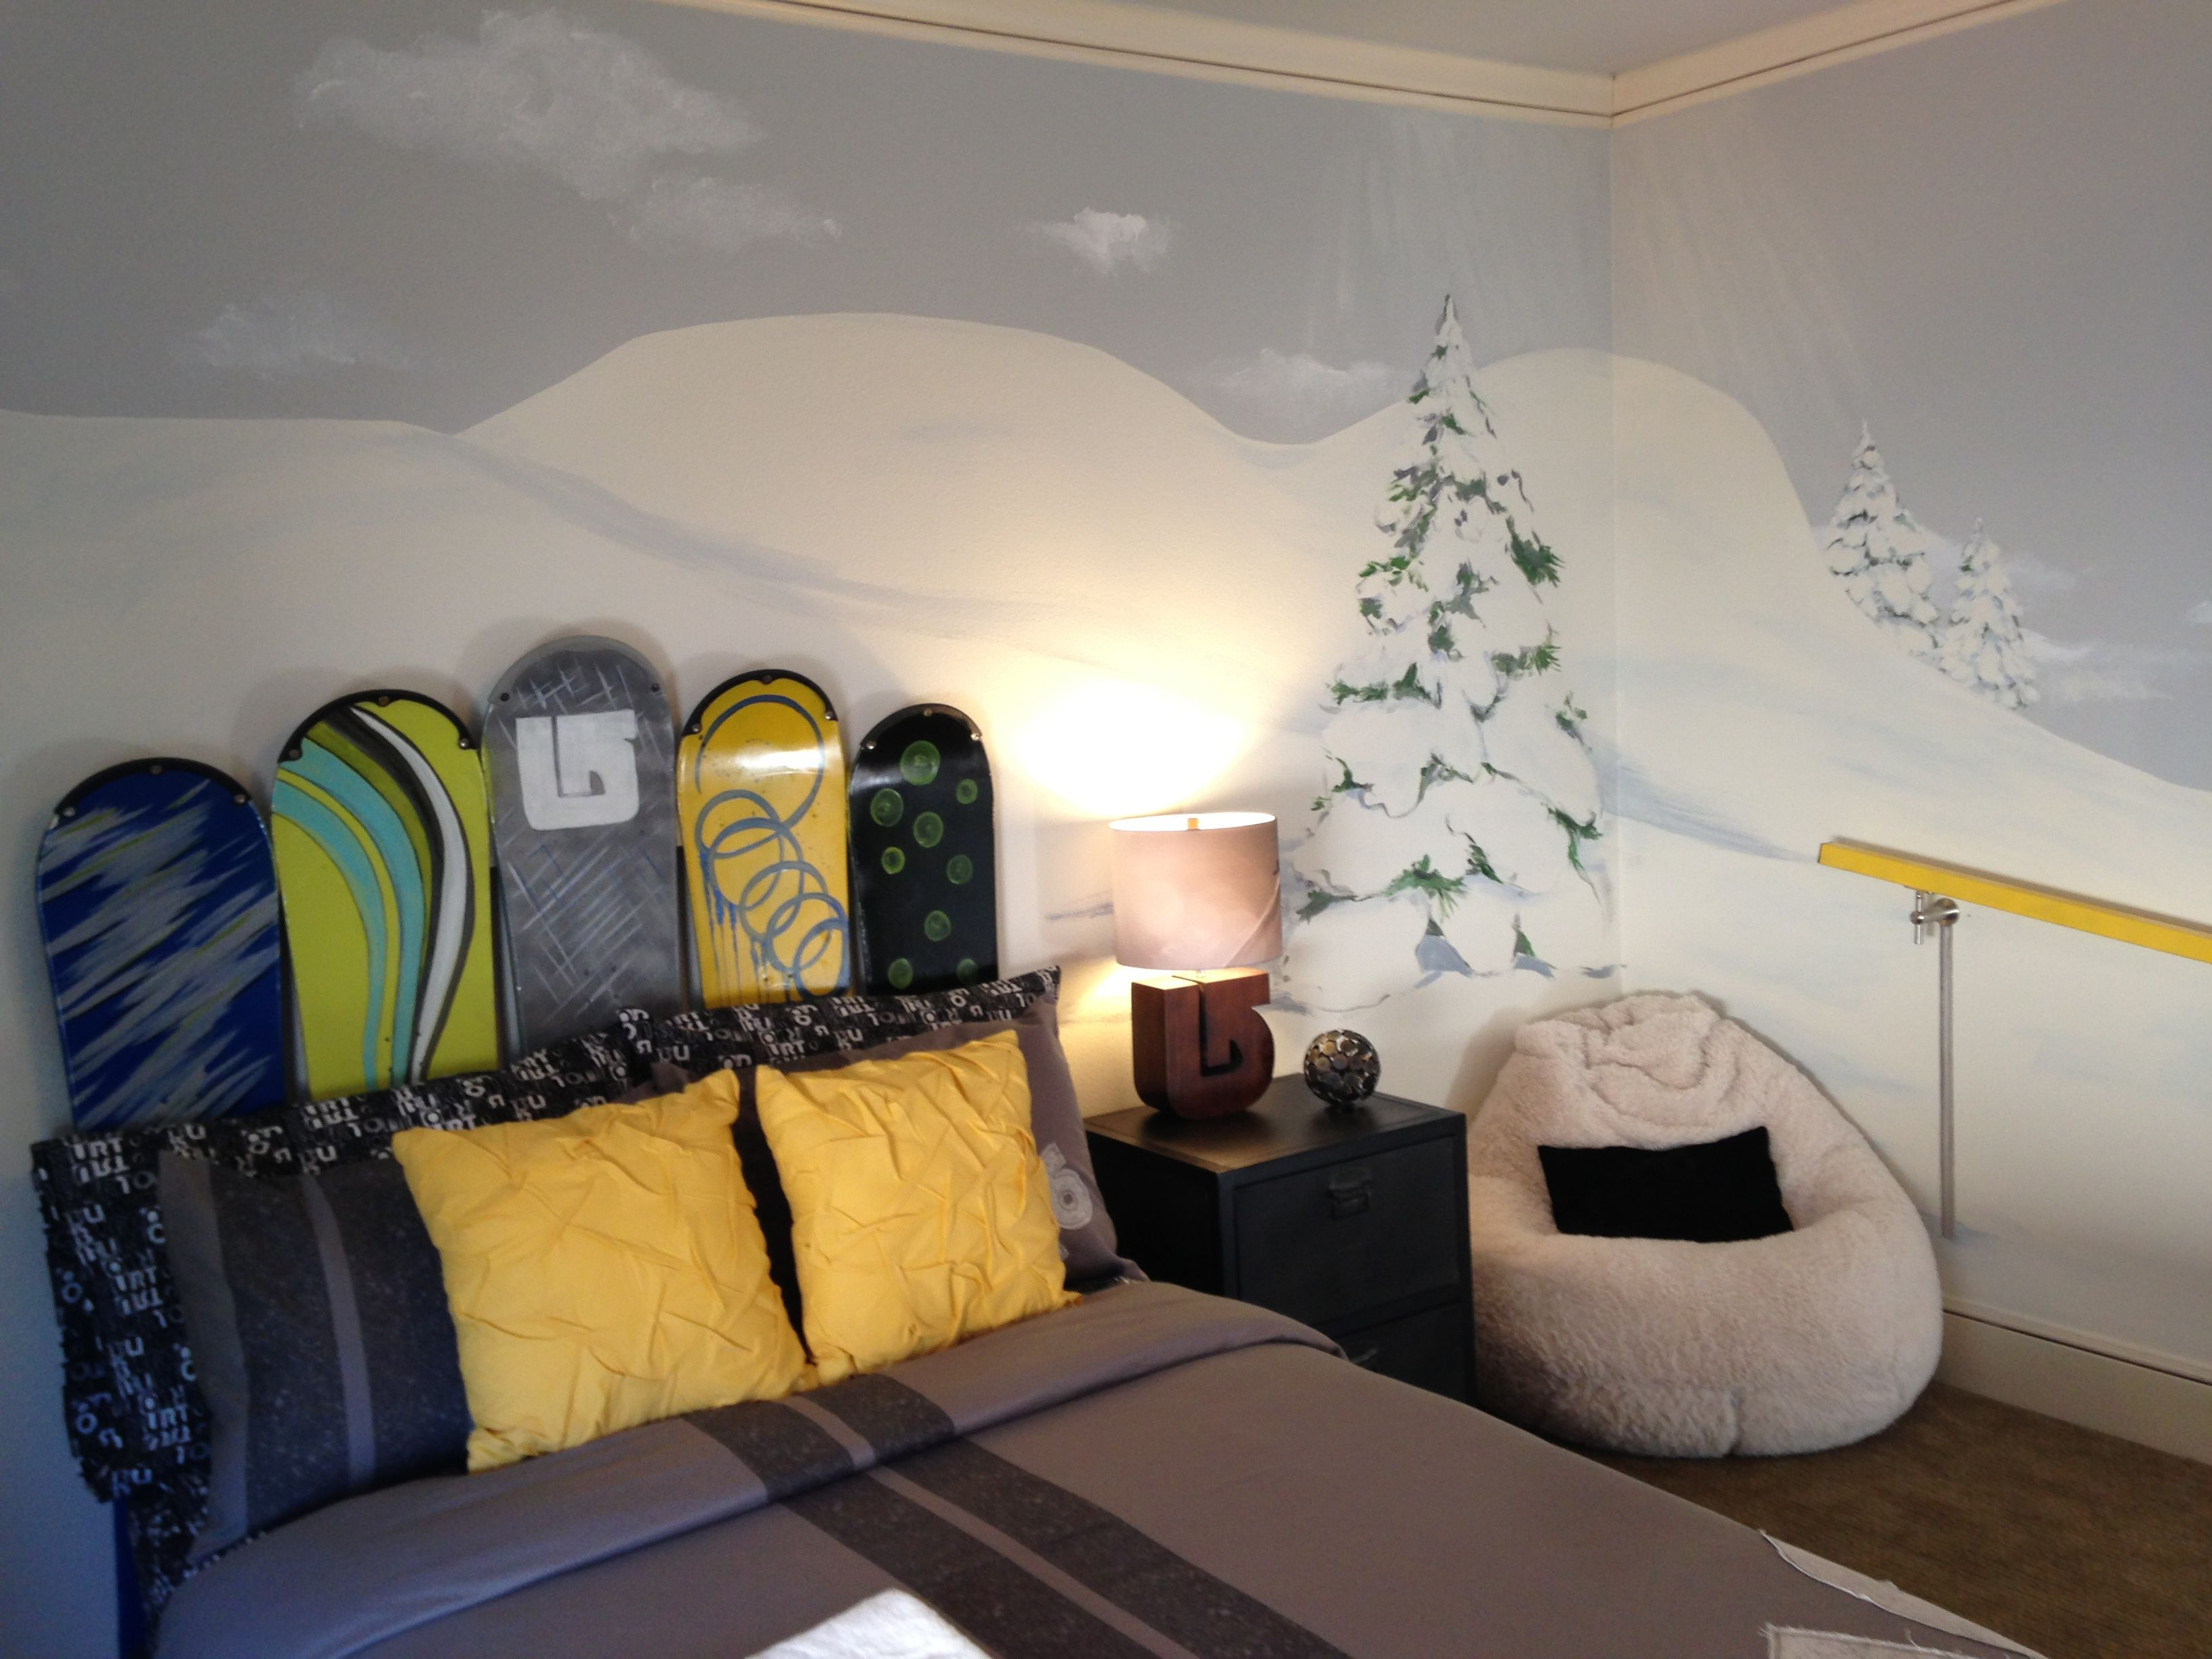 hayden 39 s snowboard room hayden pinterest room and